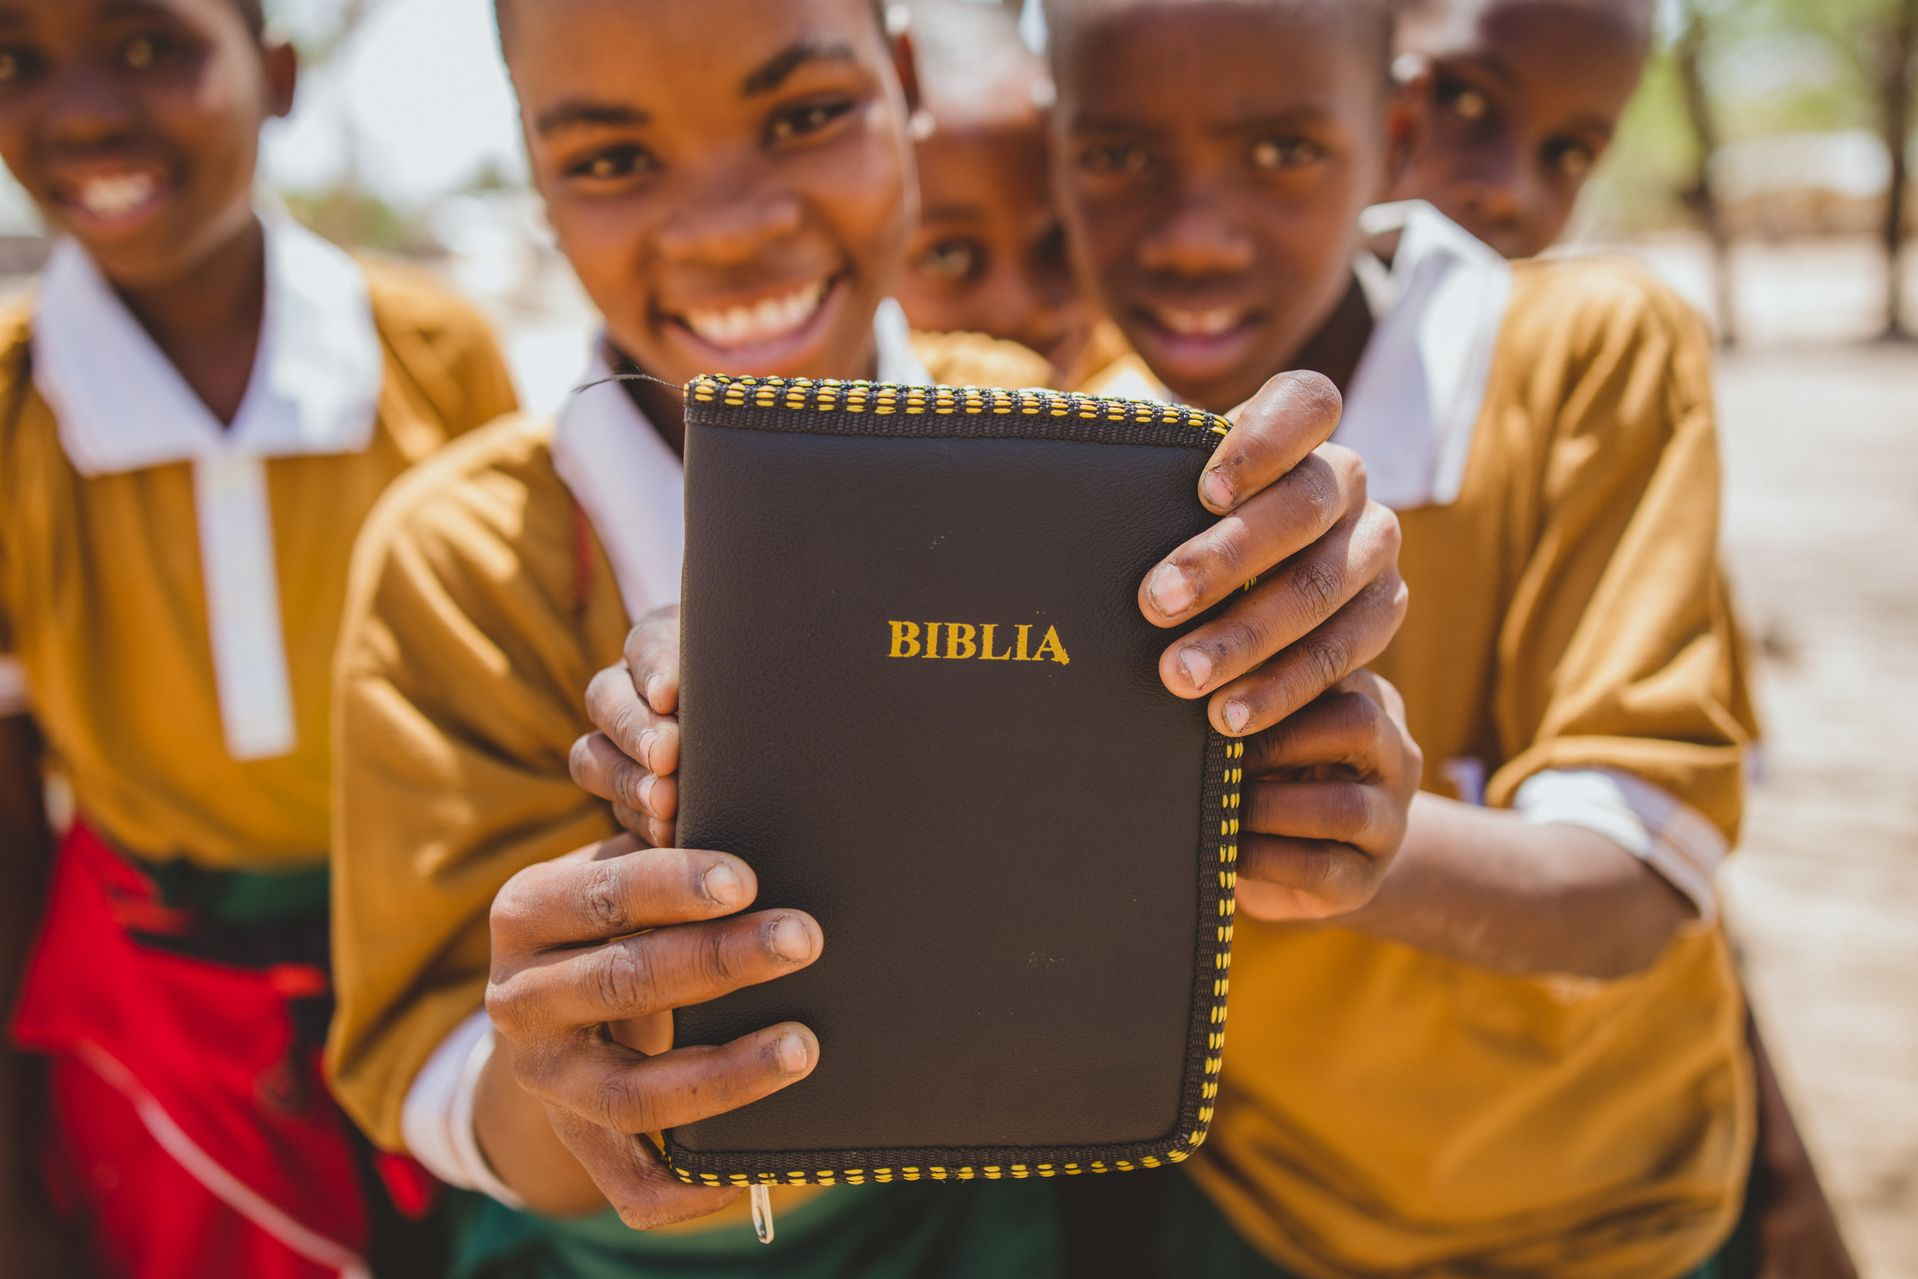 Two smiling children in Tanzania hold up a brown and yellow Bible.